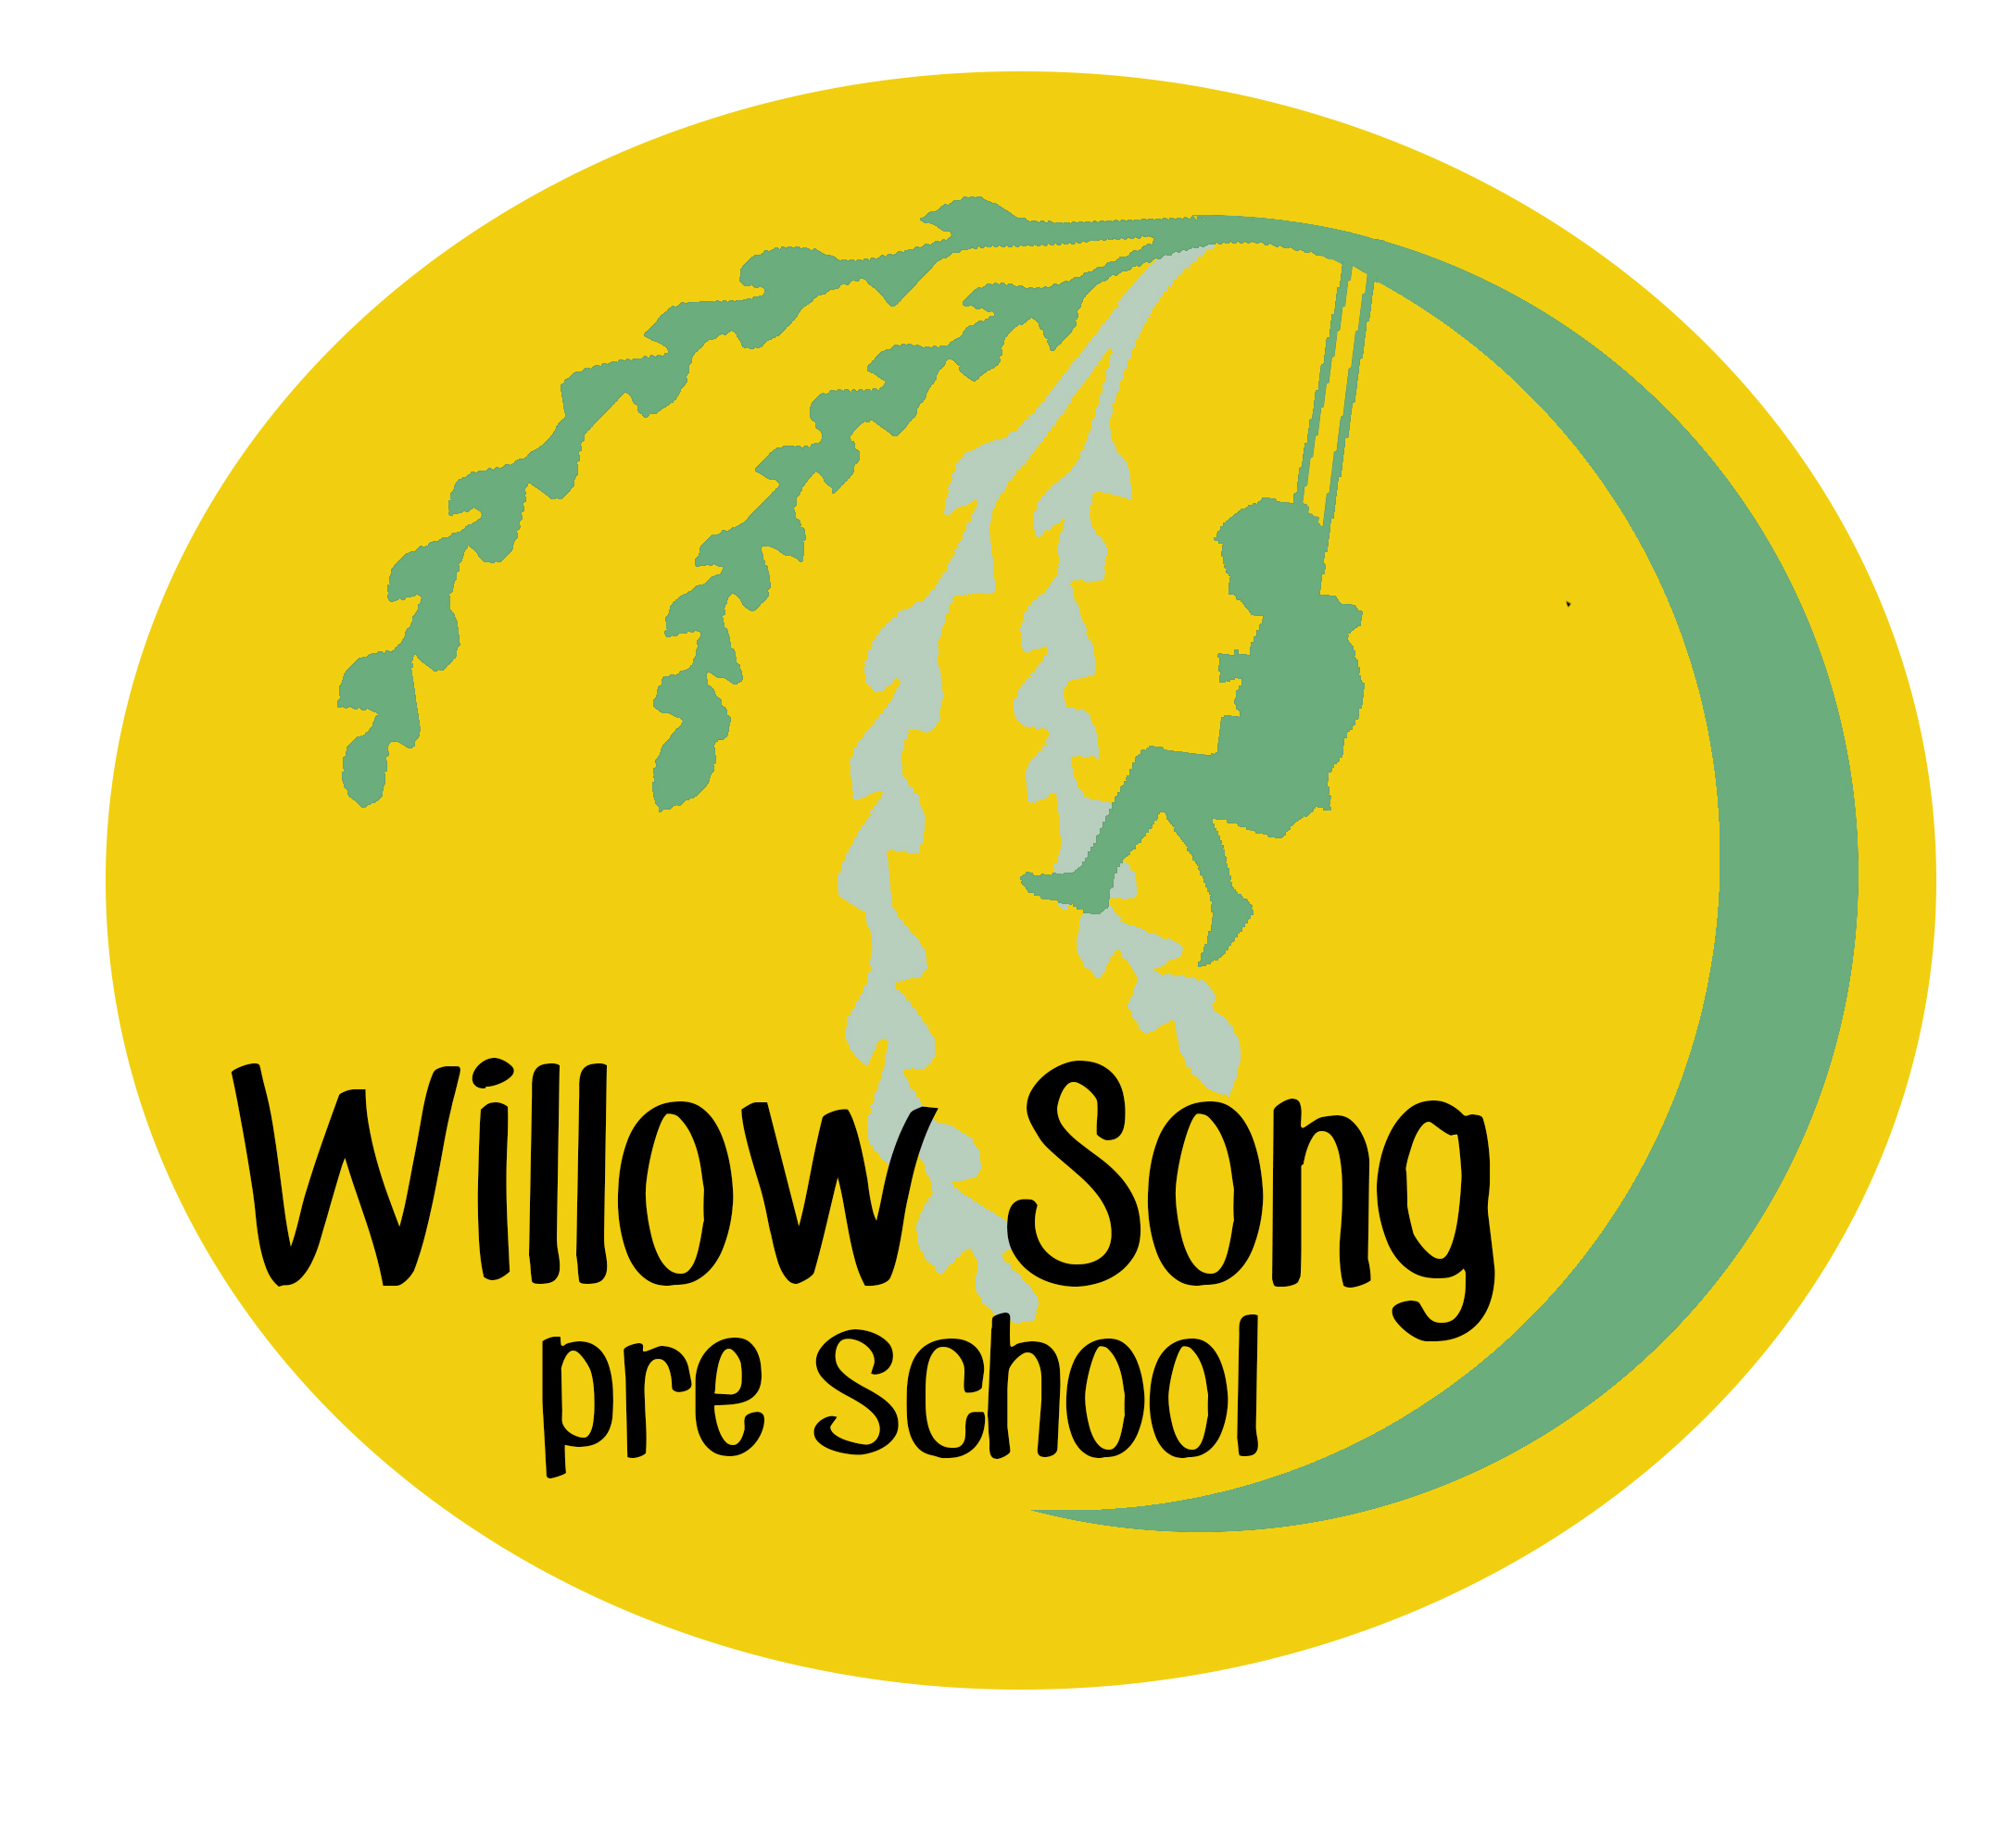 Willow Song Pre School